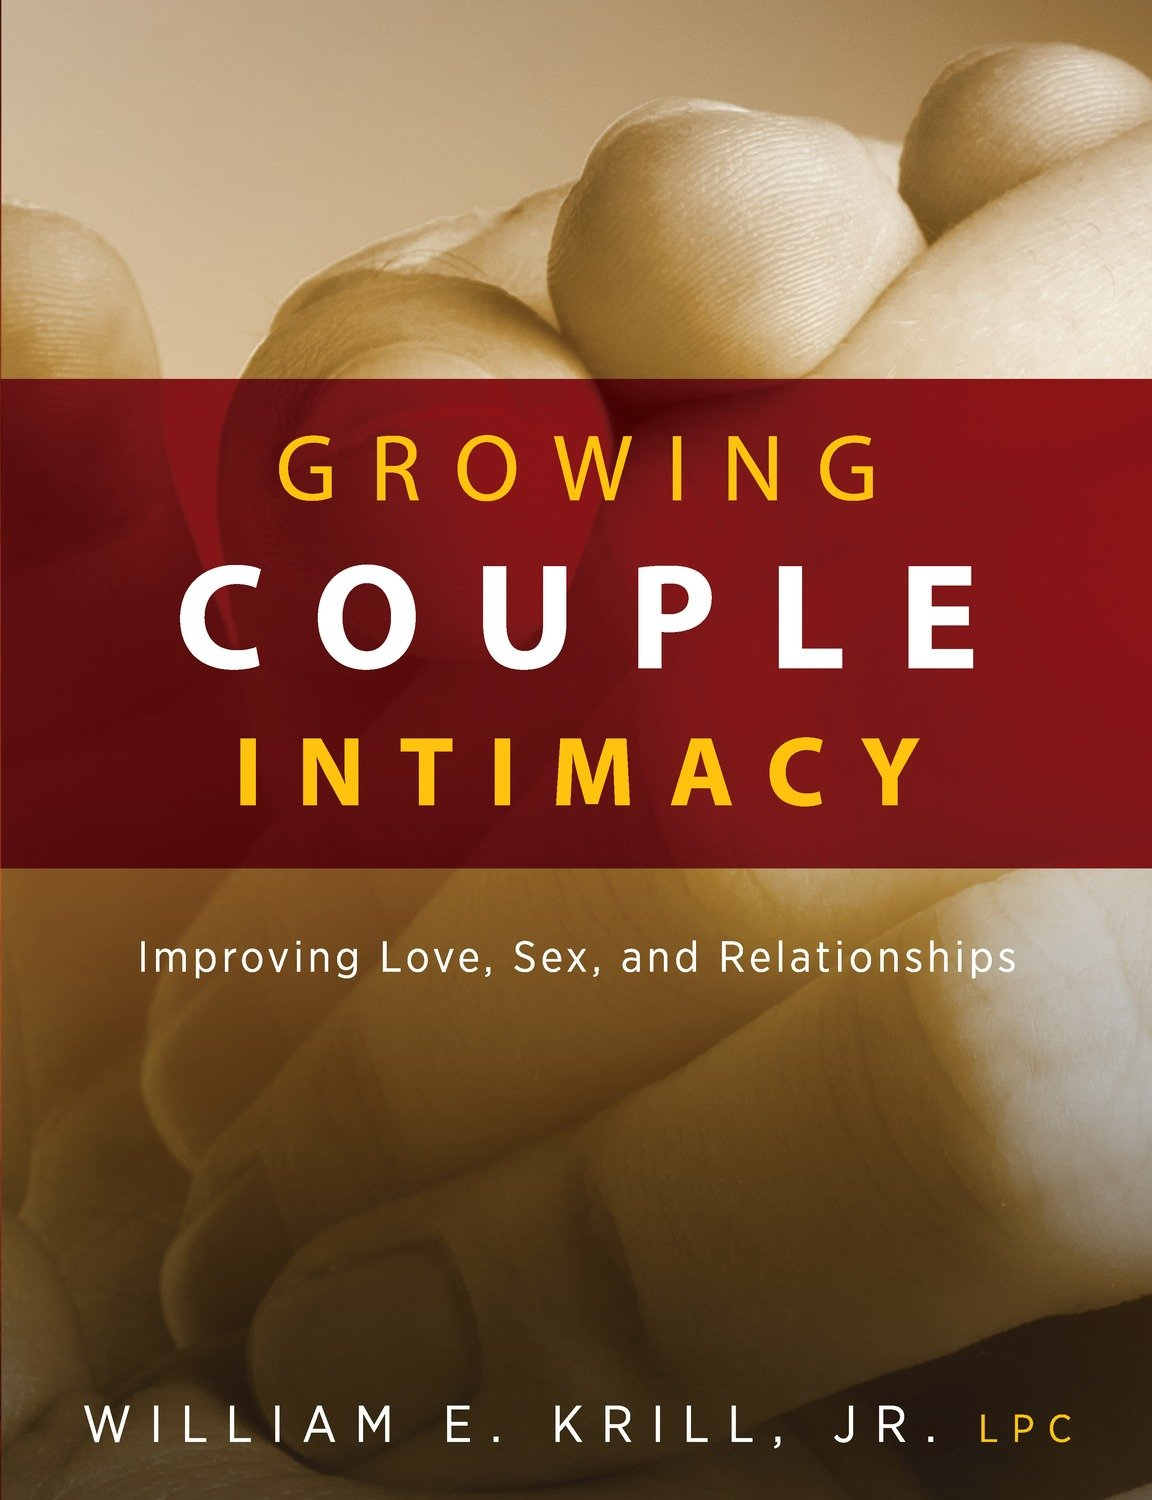 Growing Couple Intimacy: Improving Love, Sex, and Relationships